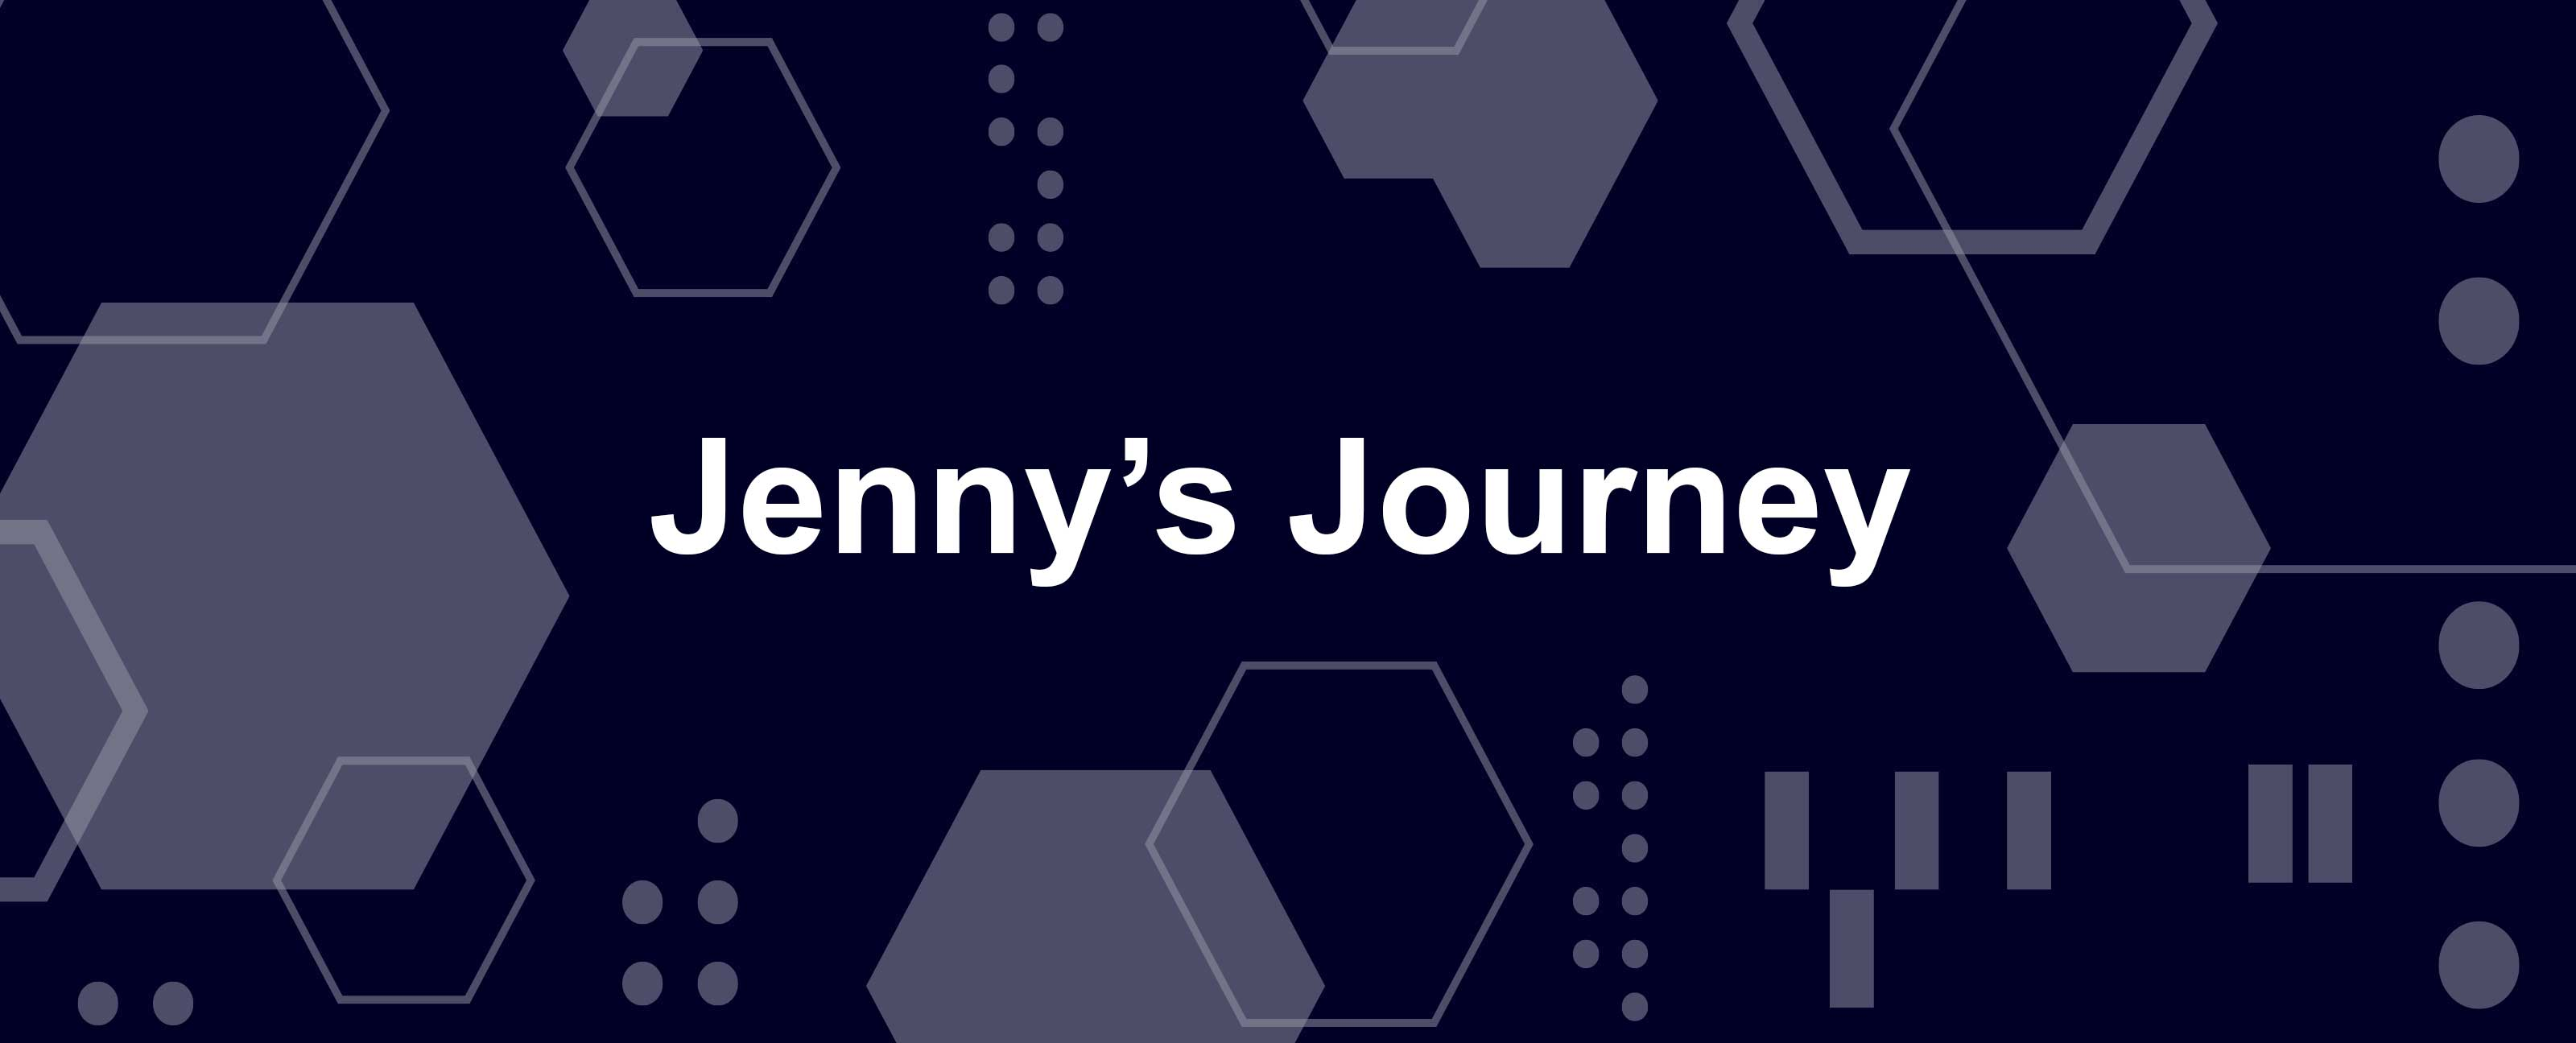 """Jenny's Journey"" in white letters of white and blue geometric background"